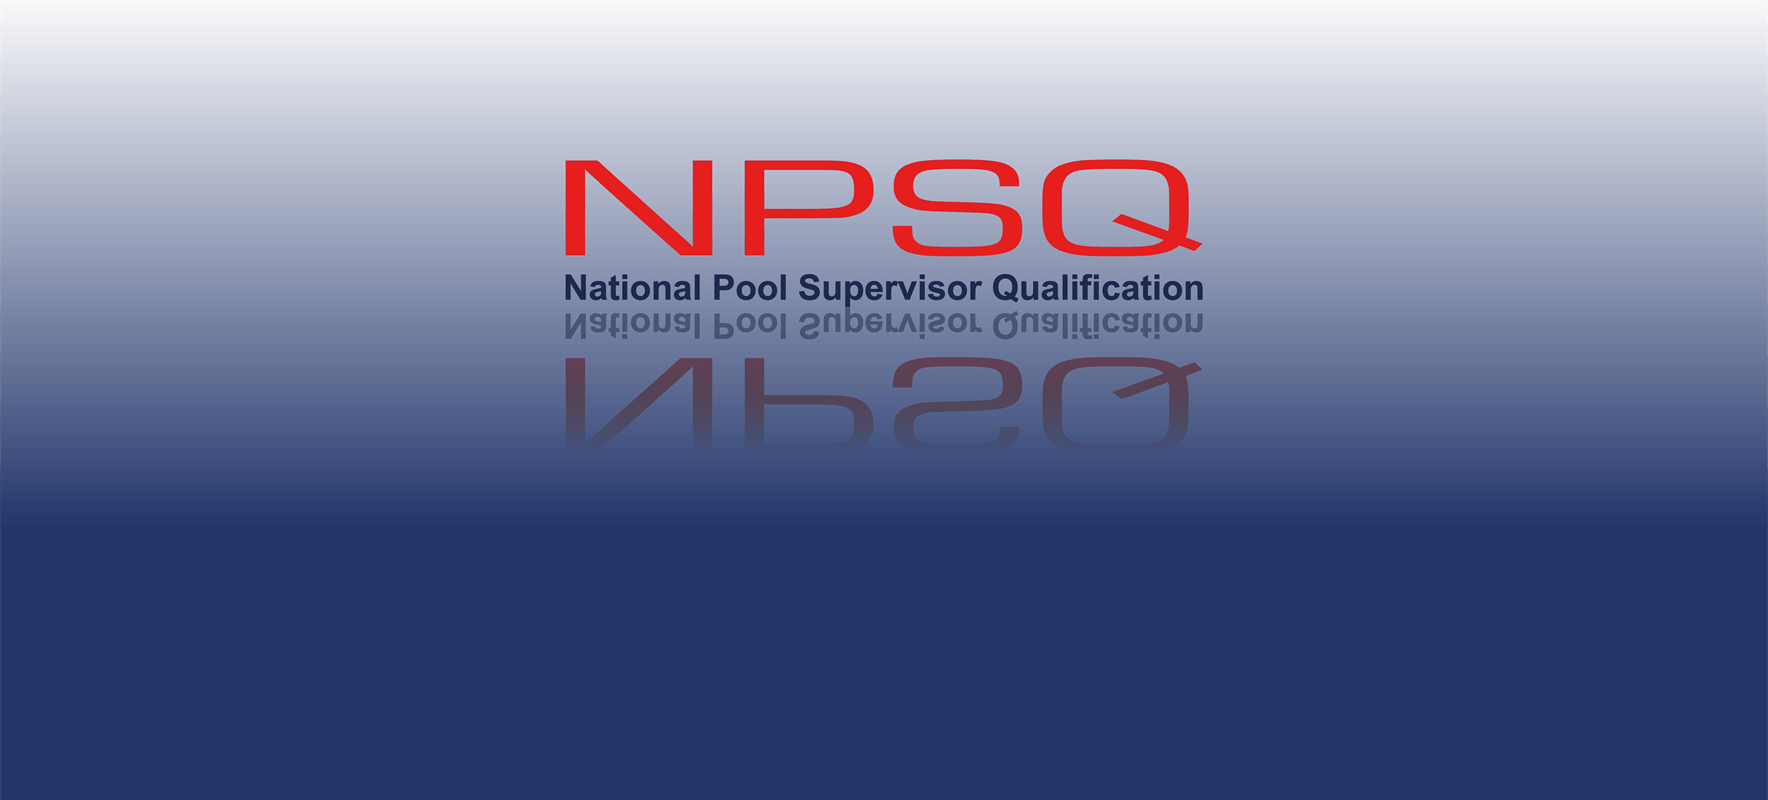 RLSS UK / IQL Level 3 Award in National Pool Supervisor Qualification (NPSQ)